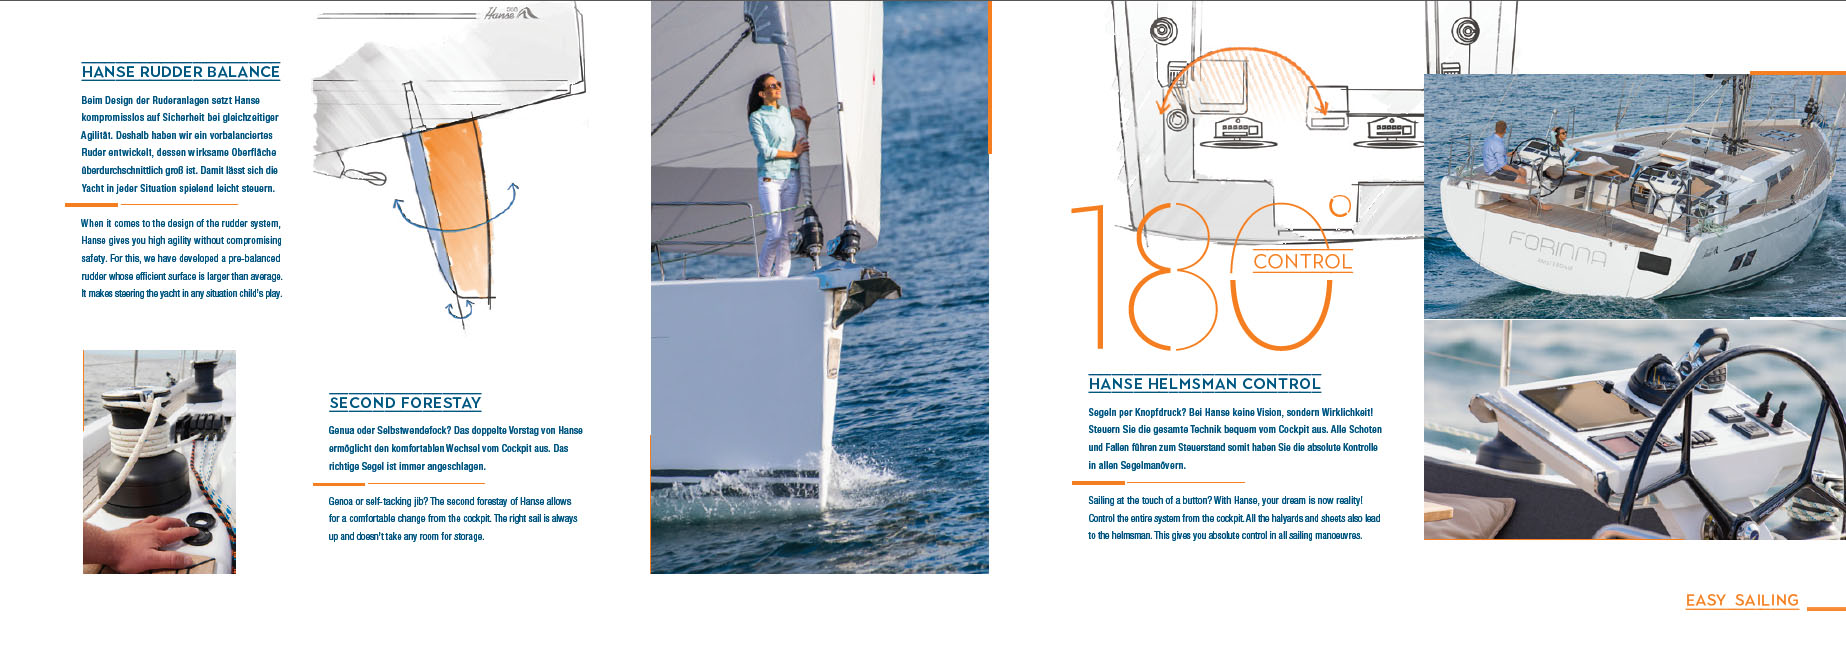 Hanse 588 Luxury Sailboat Rigging